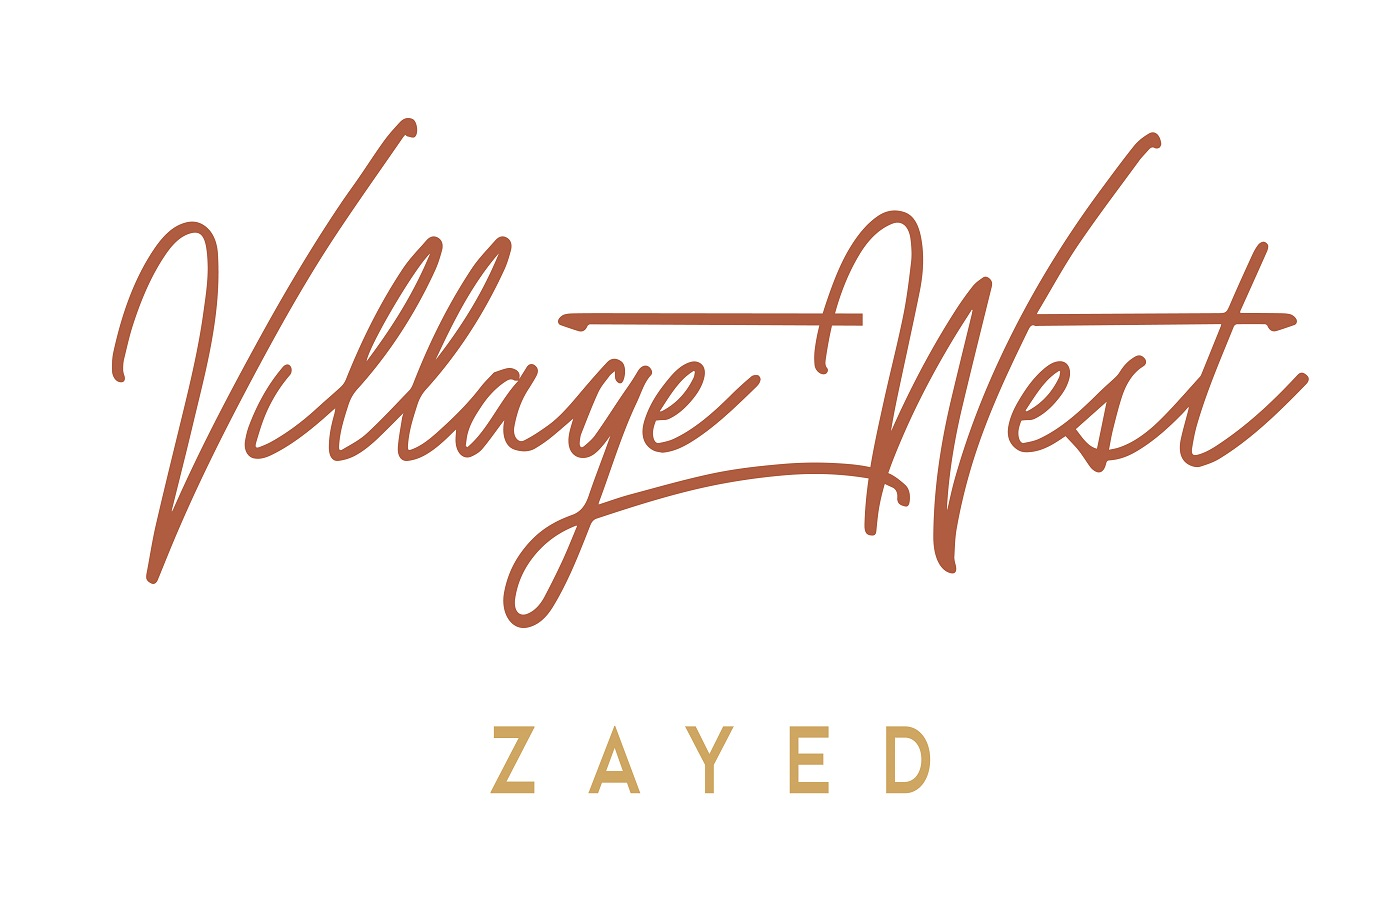 Village West Sheikh Zayed Compounds Dorra Developments - Fully Finished Apartments - 8 Gates Real Estate Egypt (0)